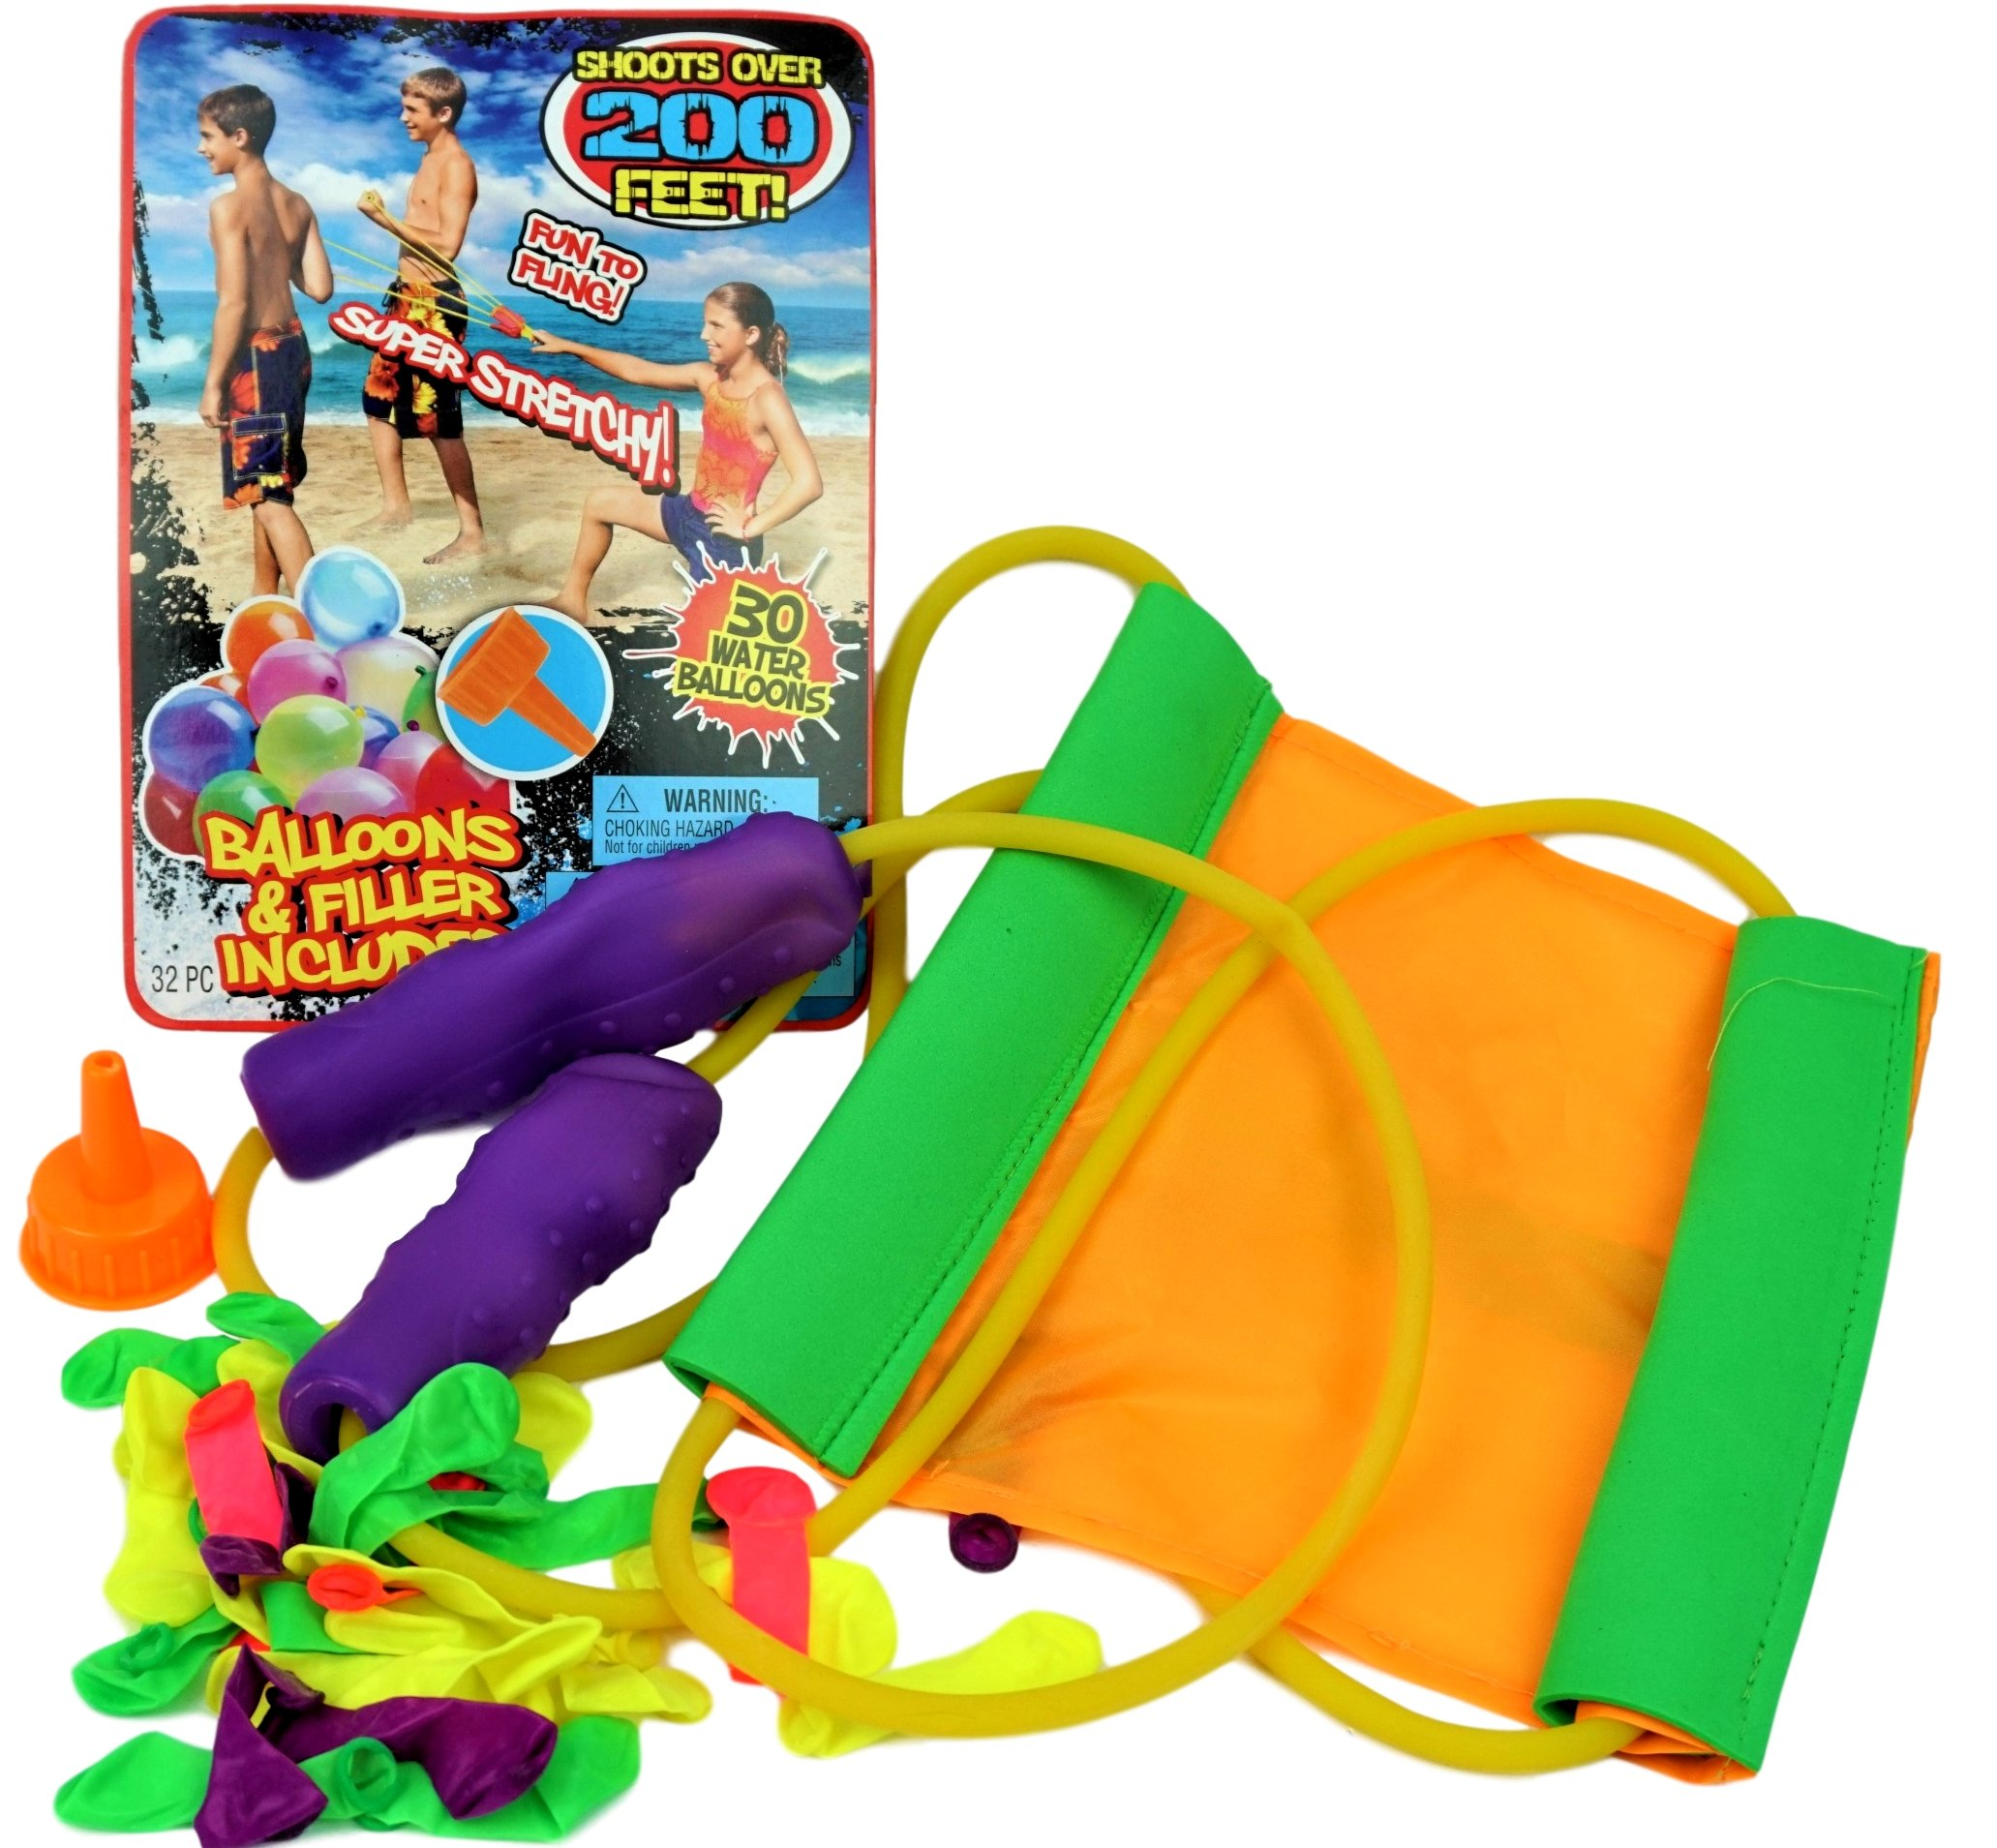 JA-RU Huge Sling Water Balloon Launcher + 30 Balloons (Pack of 6) Filler Included. Super Stretch | Item # 718-6 by JA-RU (Image #6)